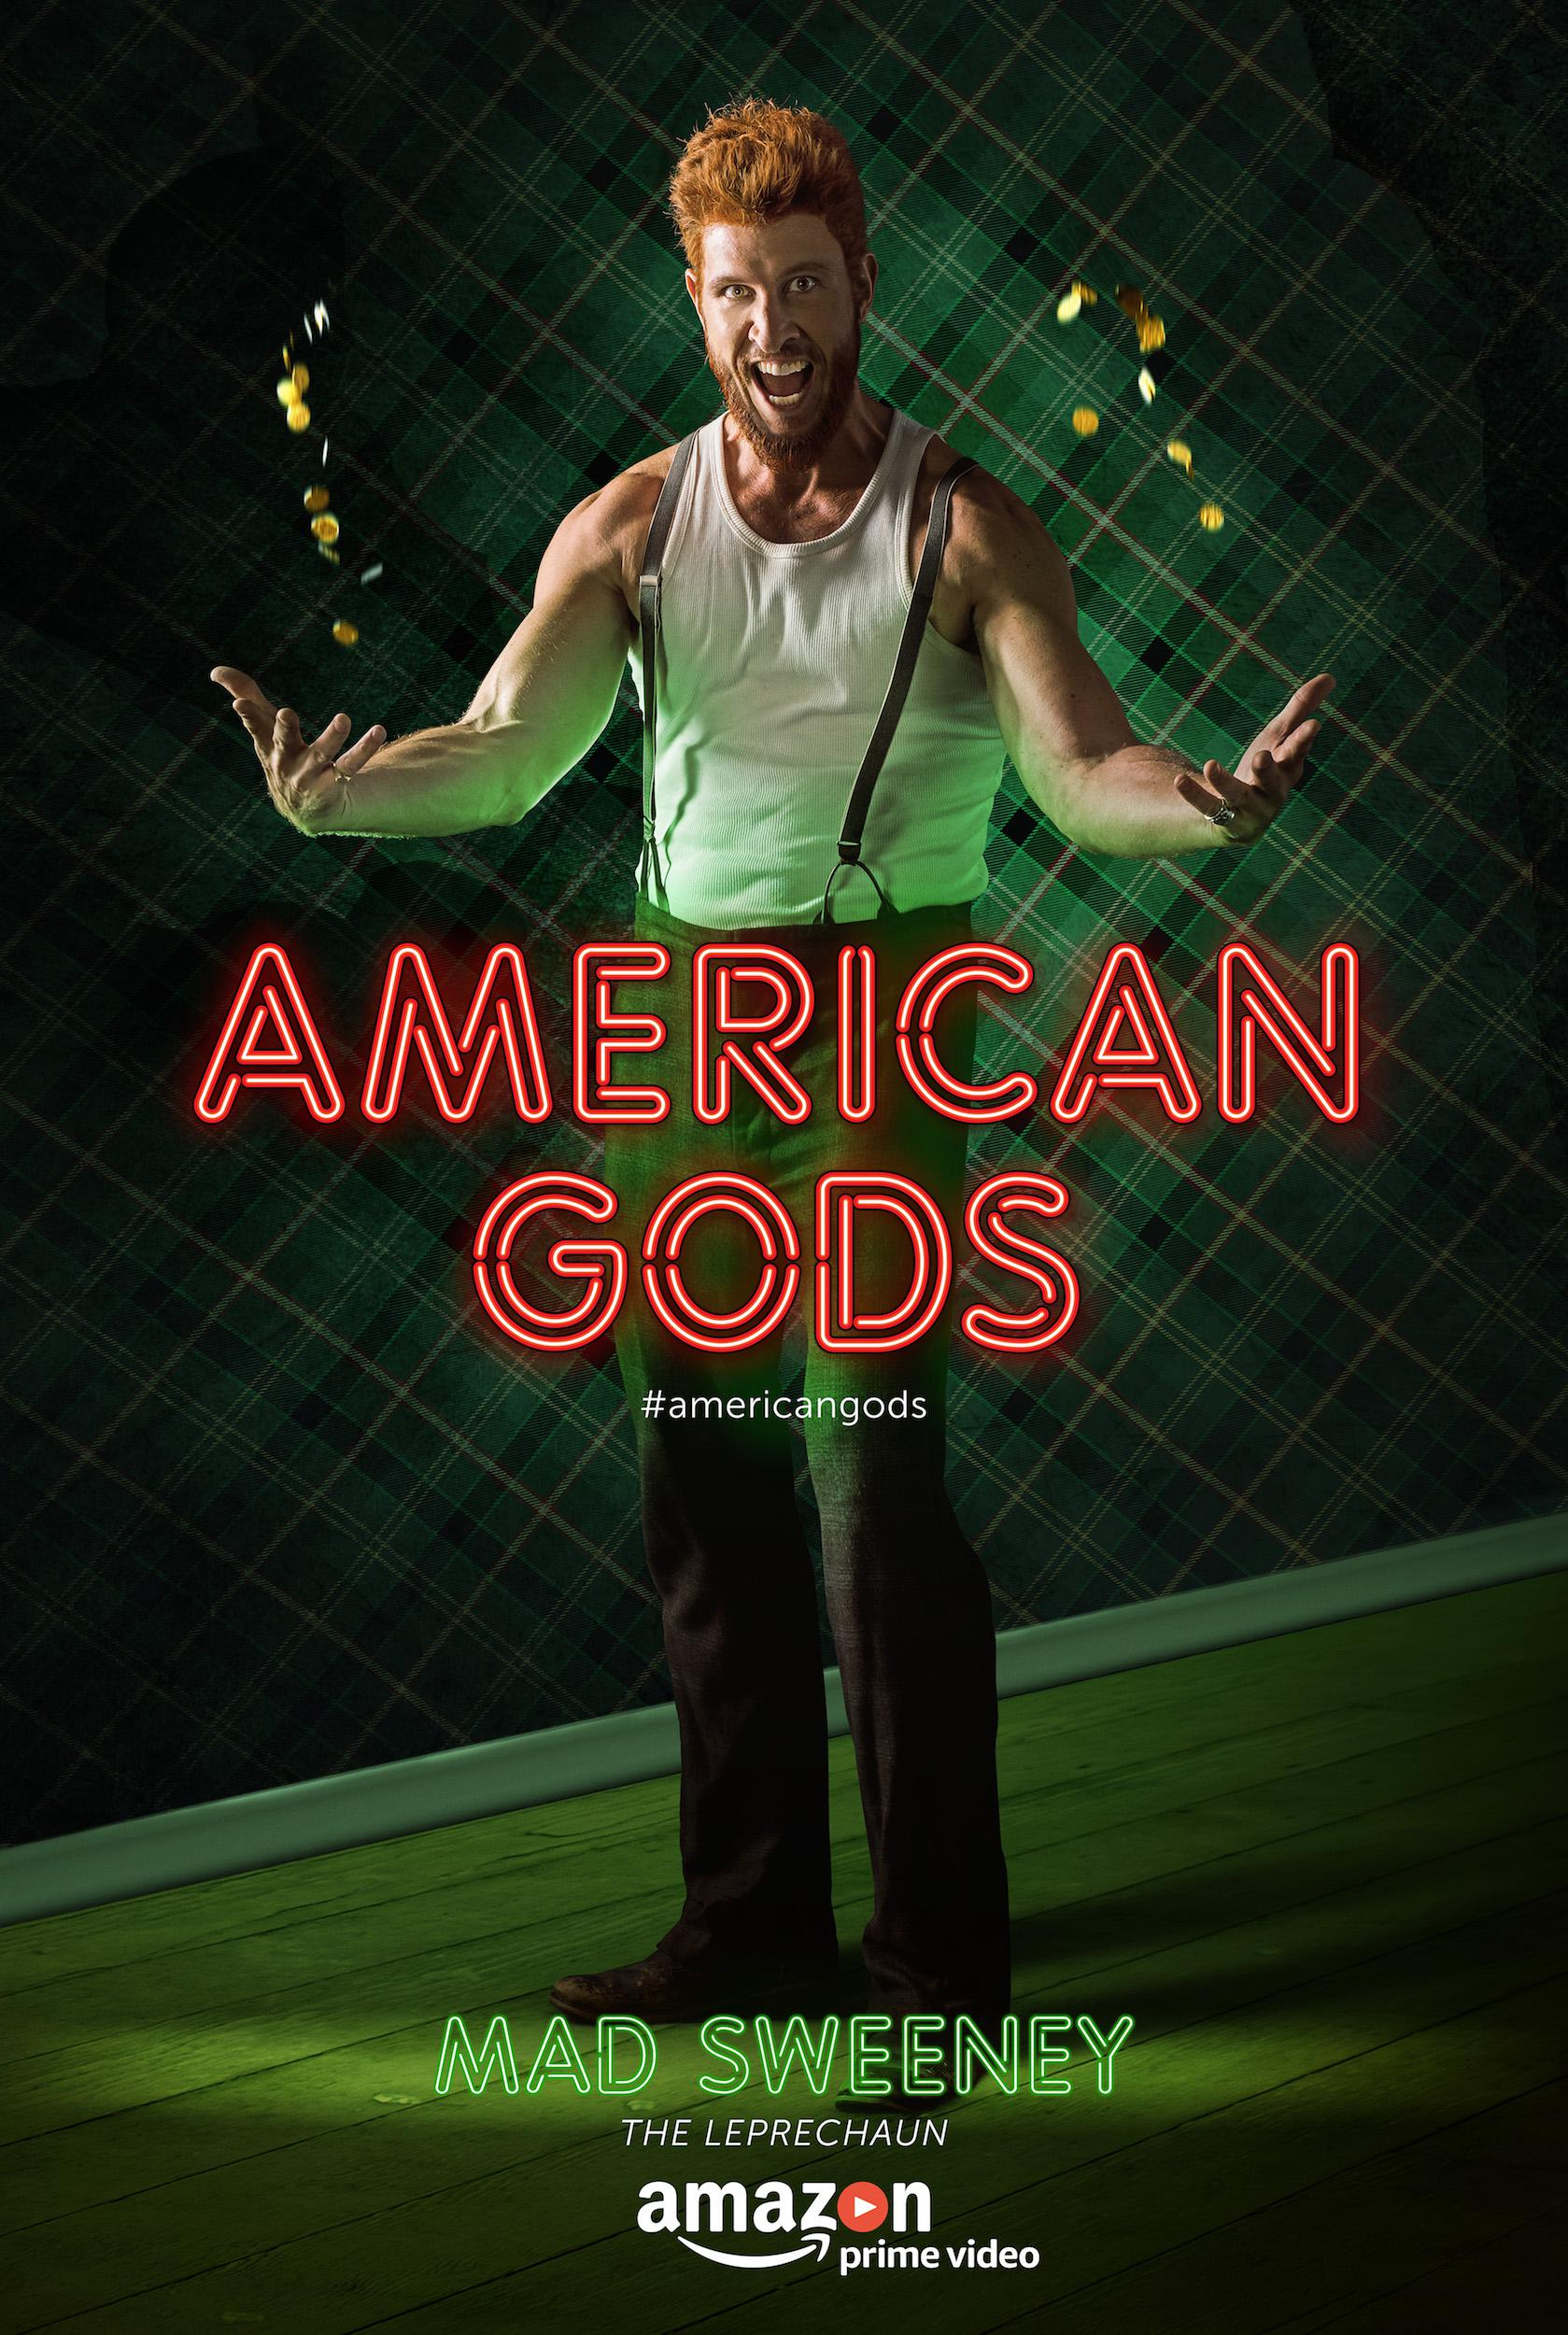 American Gods - Series - Pablo Schreiber as Mad Sweeney